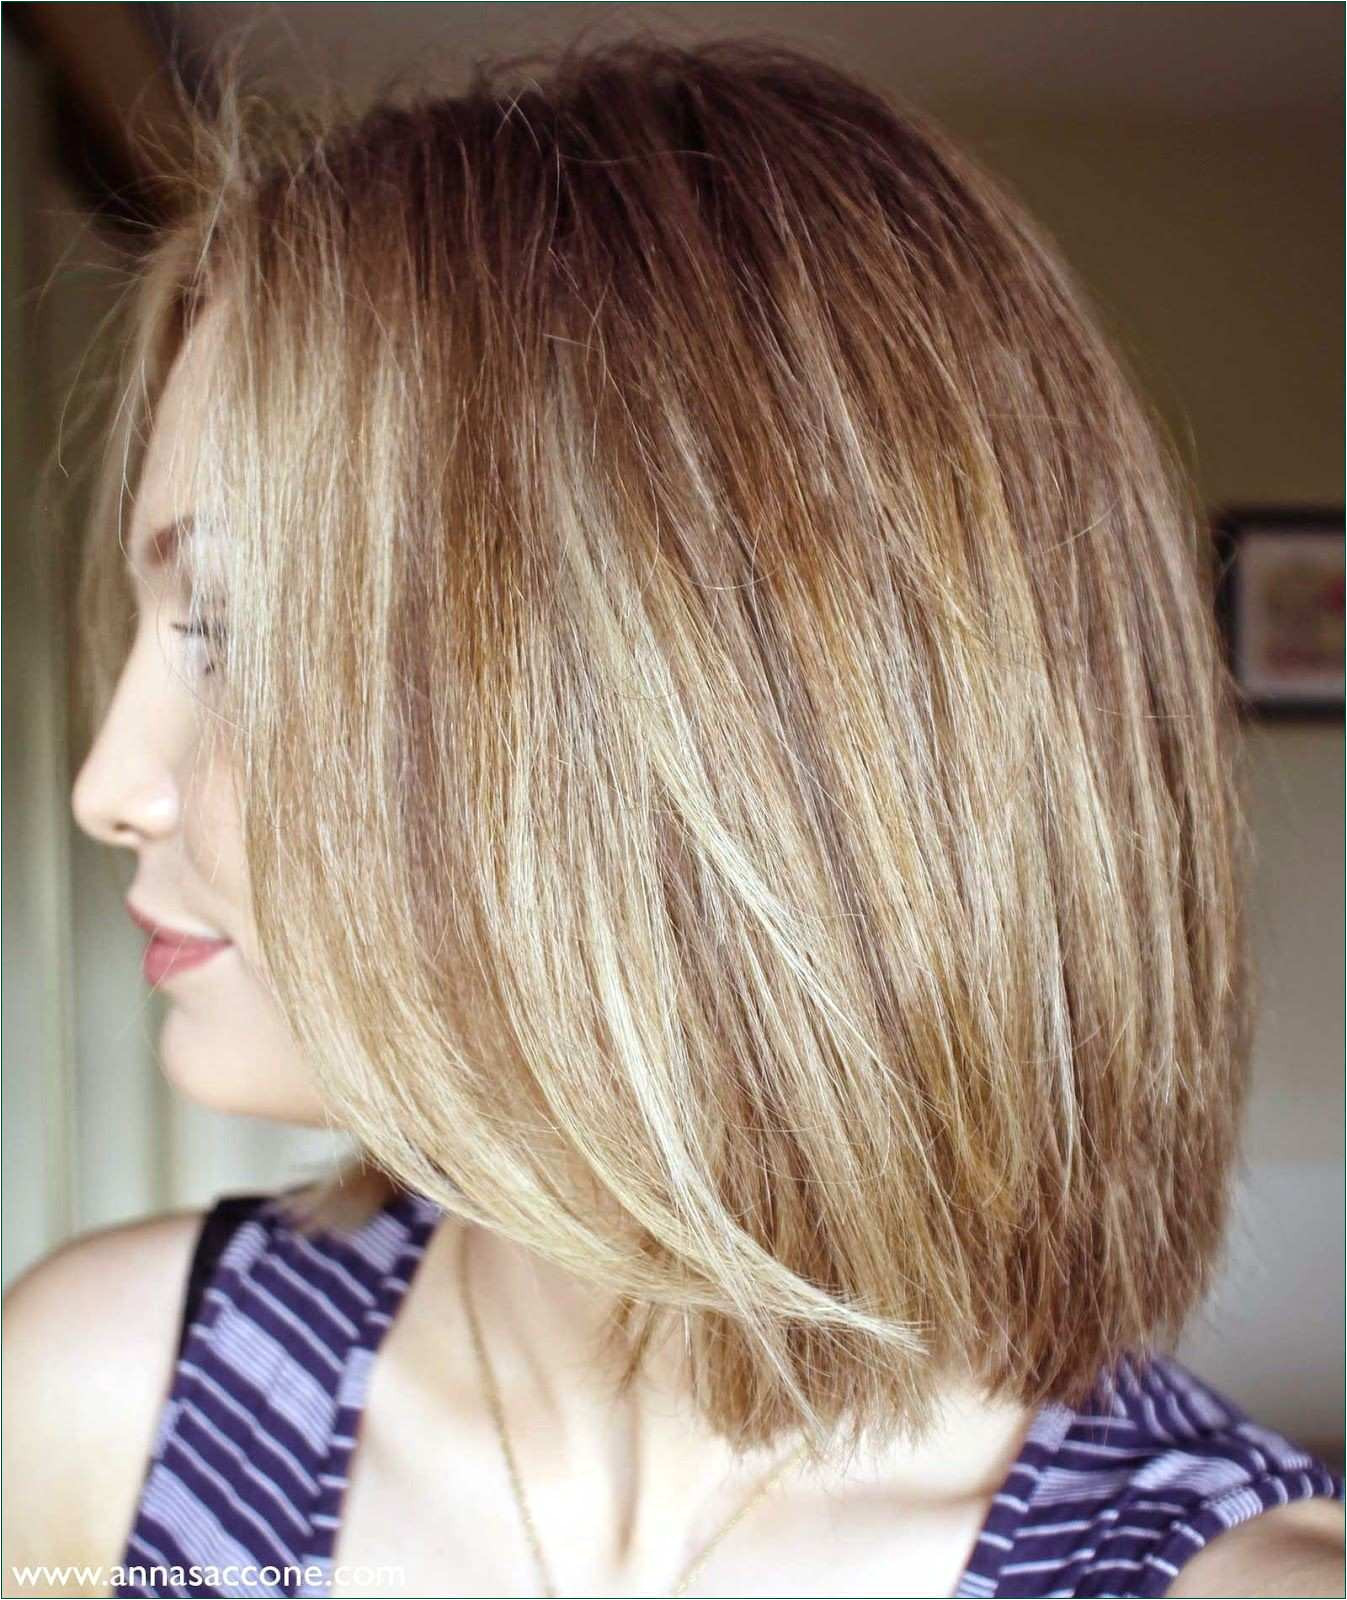 Medium Length Inverted Bob Hairstyle Hottest T25c Long Layered Brunette Hairstyles Gallery Luxury I Pinimg 1200x